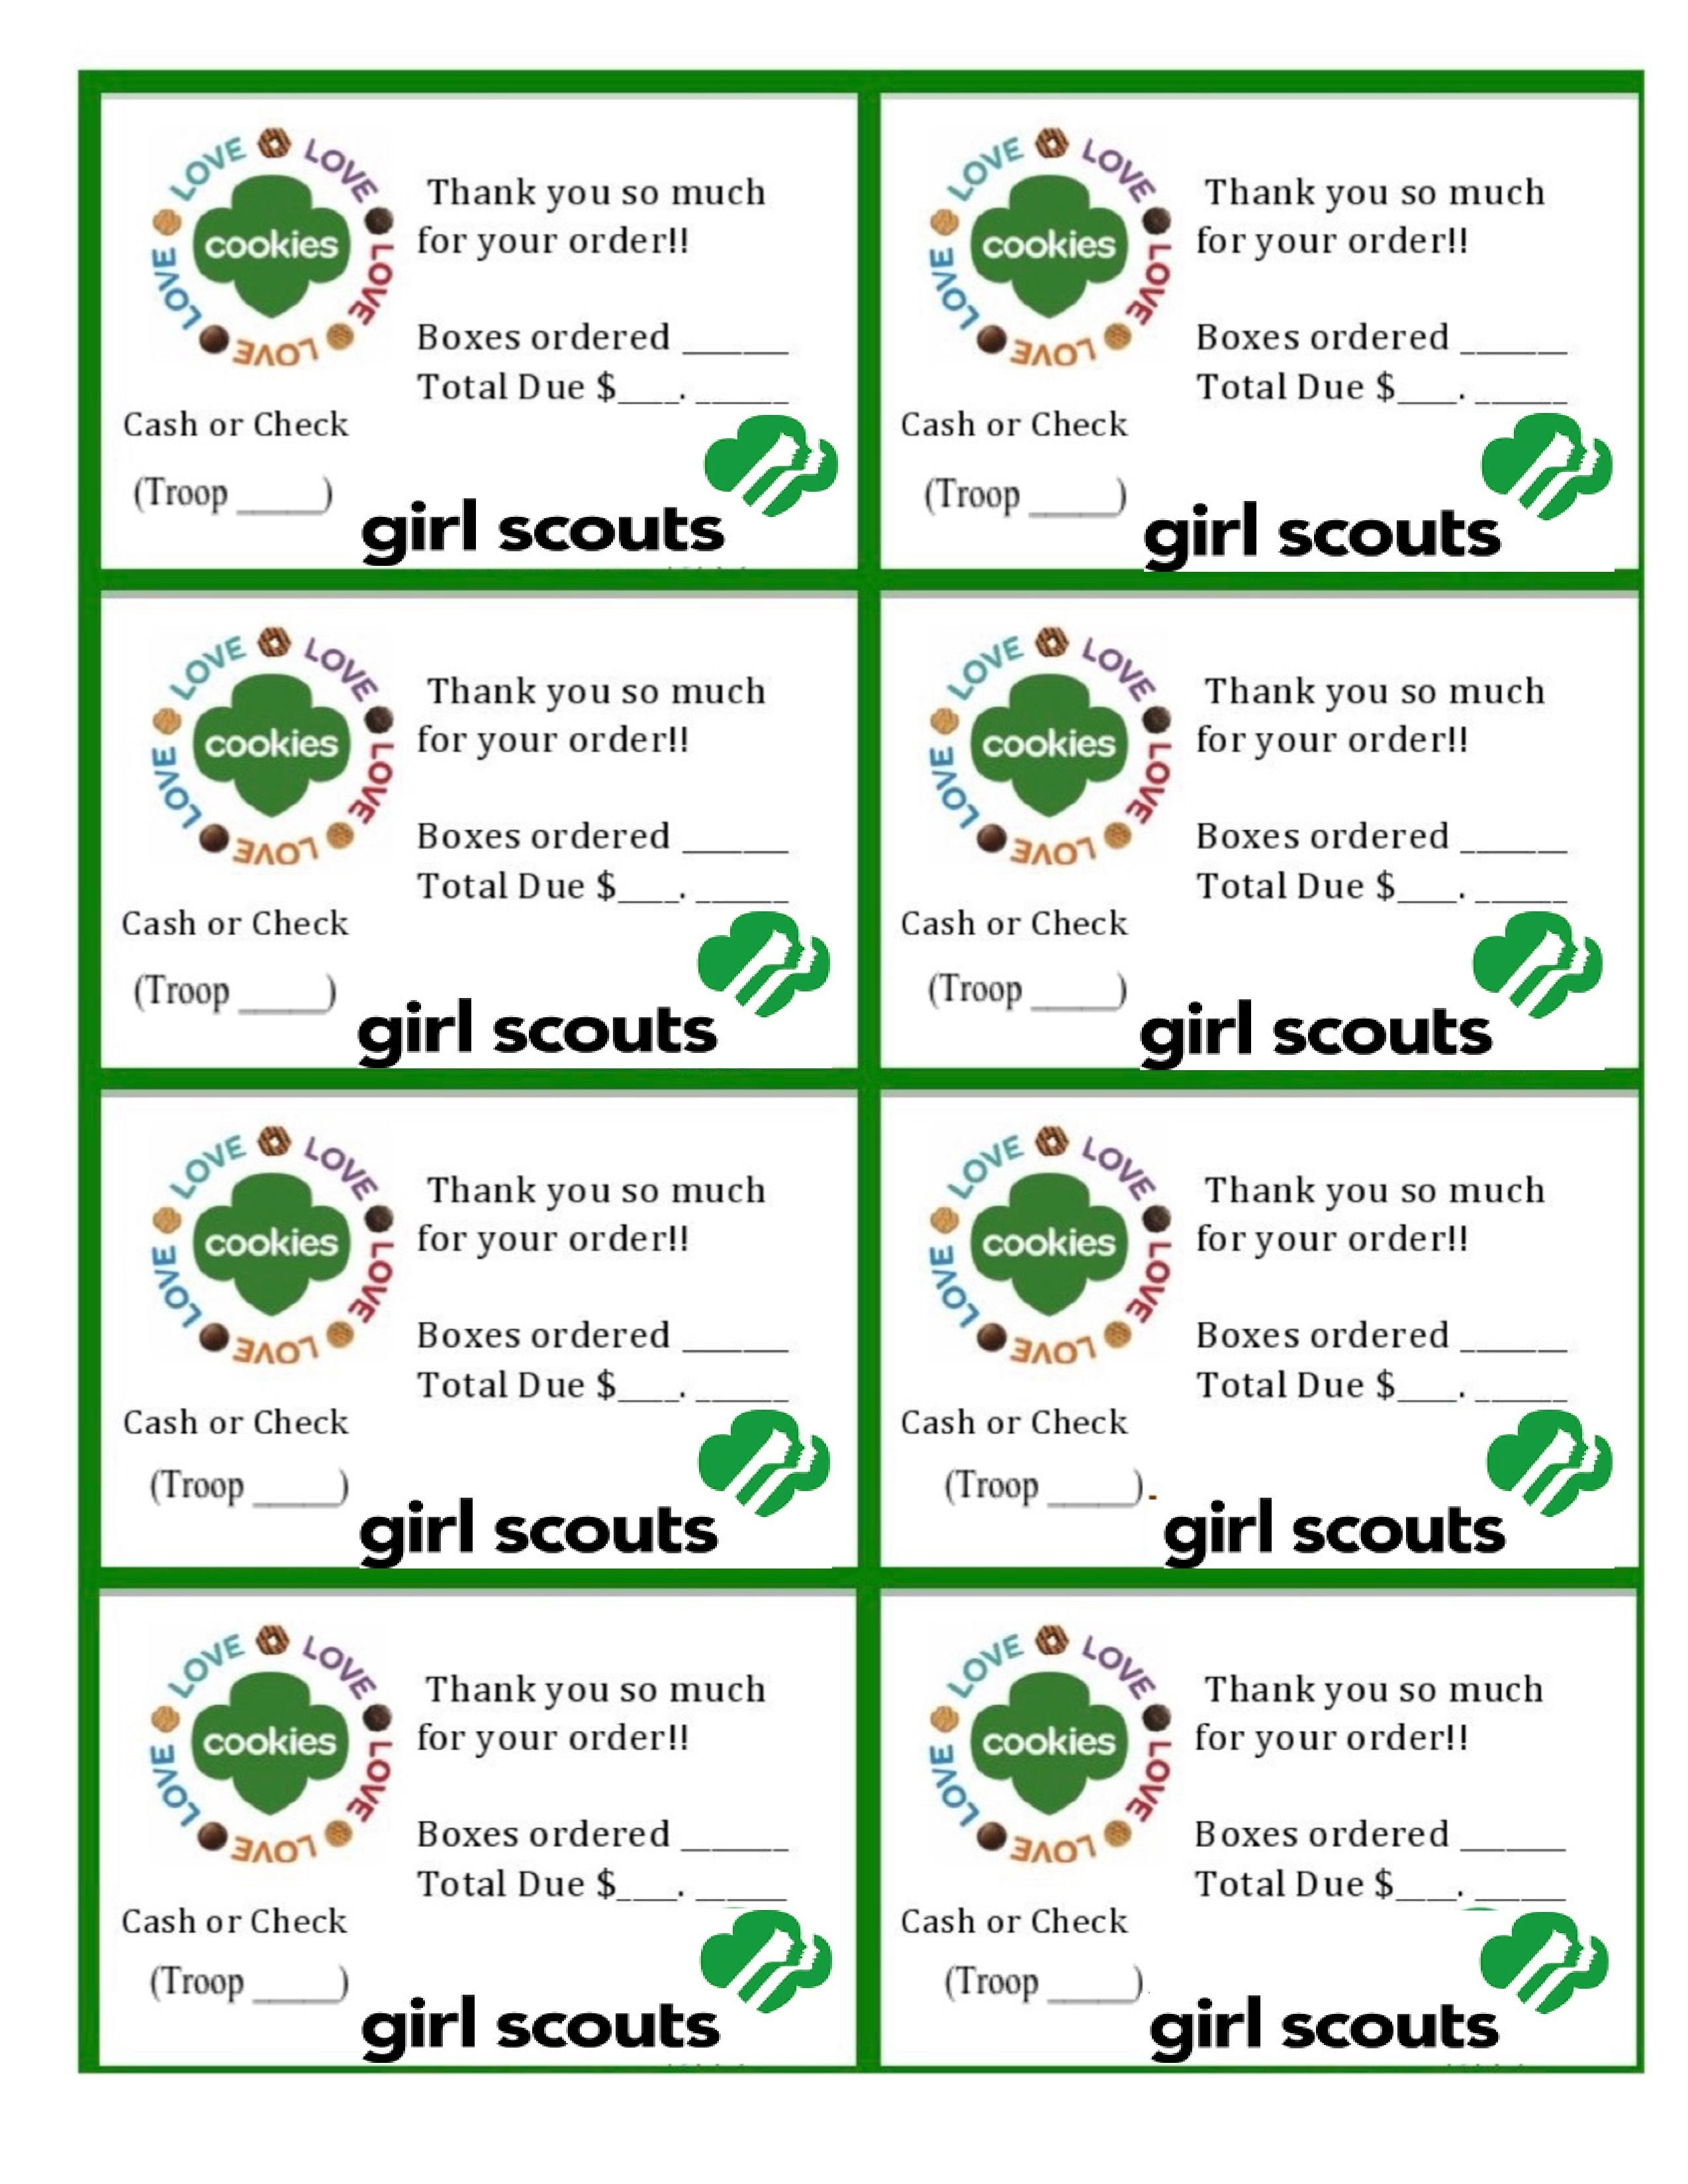 Printable Girl Scouts Cookie Sales Invoice And Thank You Card (8 Per - Free Printable Eagle Scout Thank You Cards